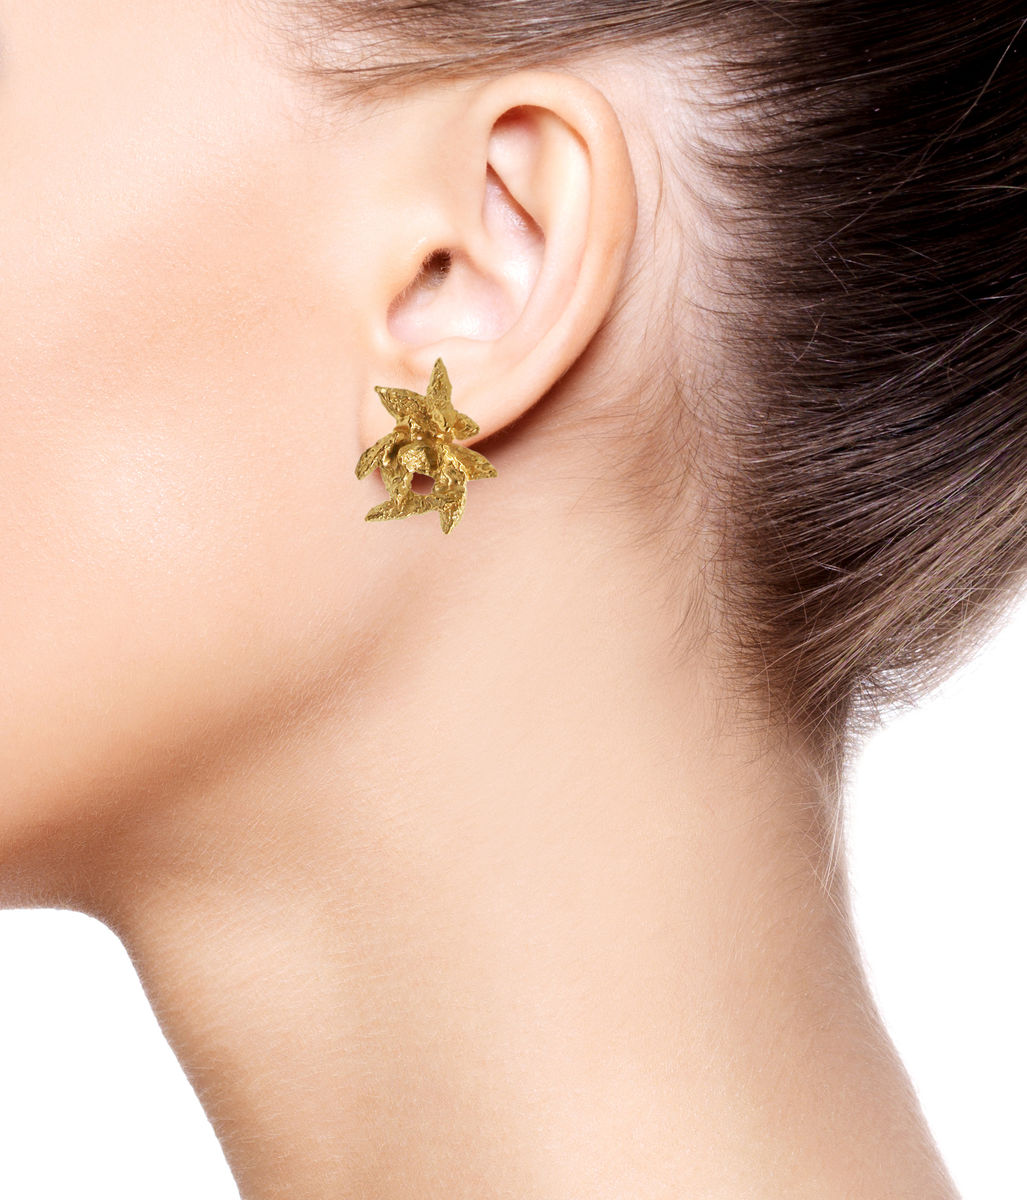 Flake Earrings Gold - product images  of